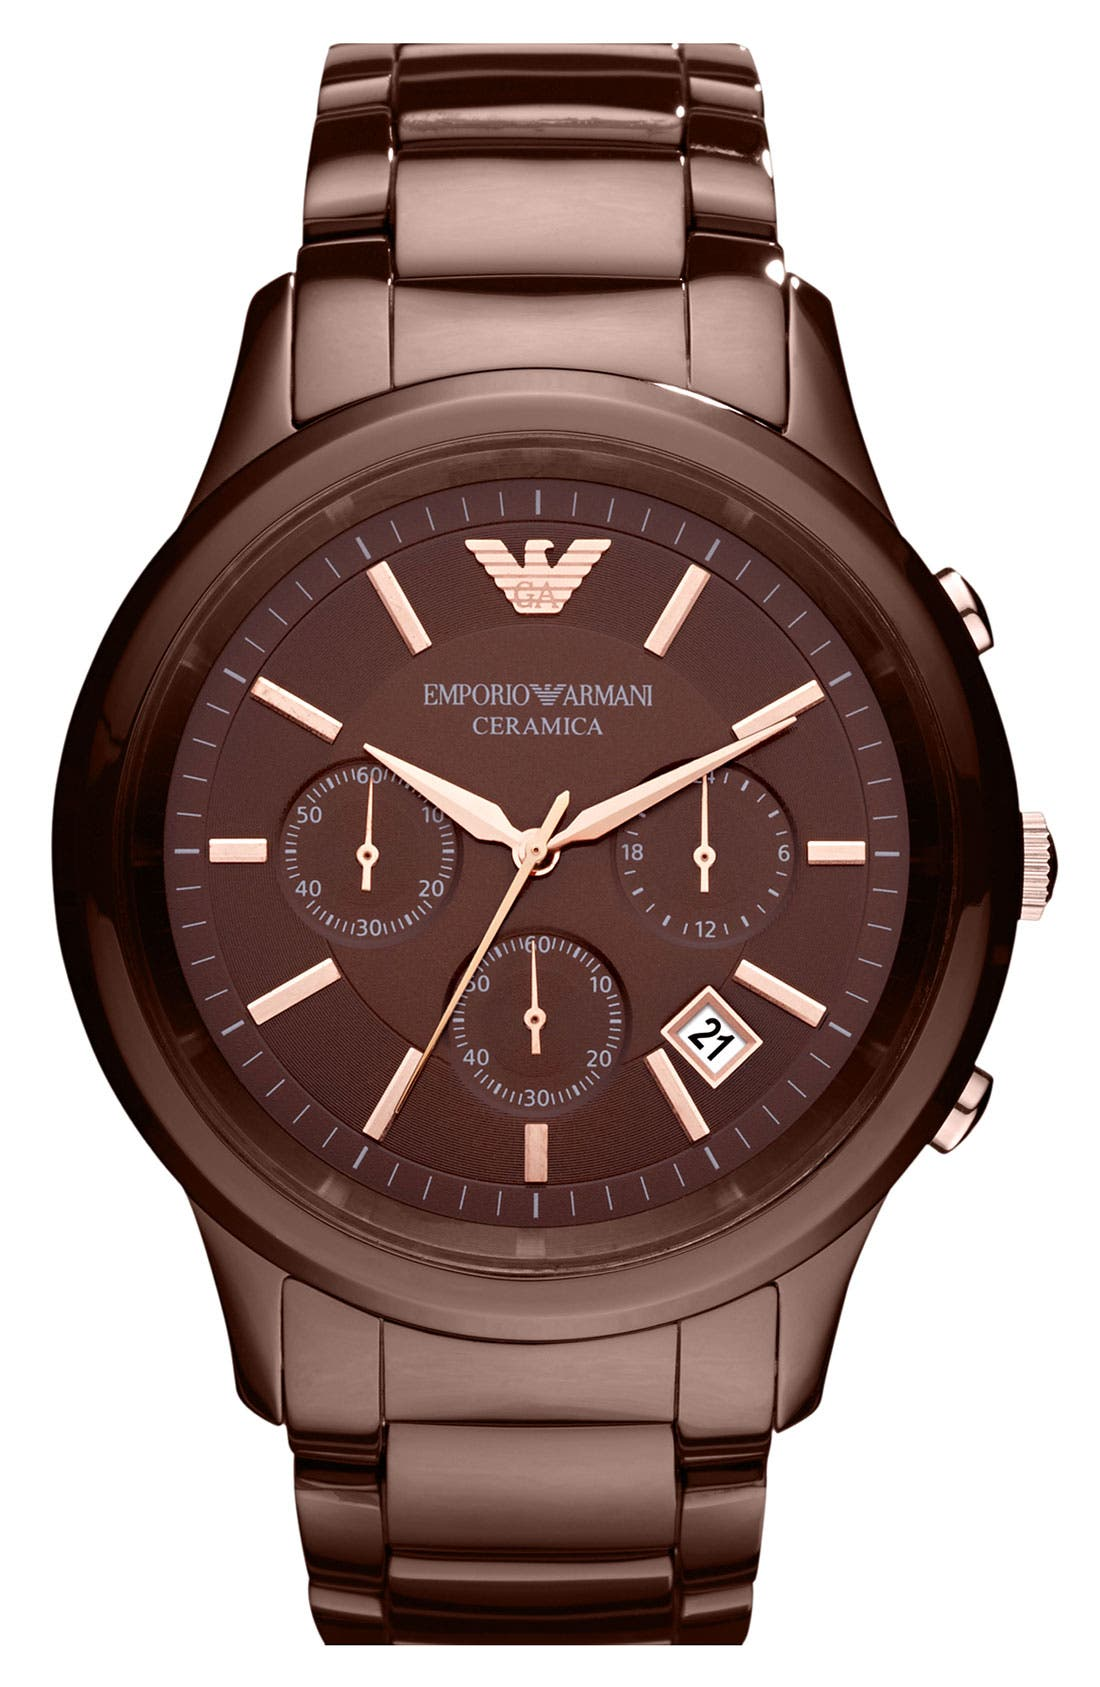 Main Image - Emporio Armani Ceramic Chronograph Watch